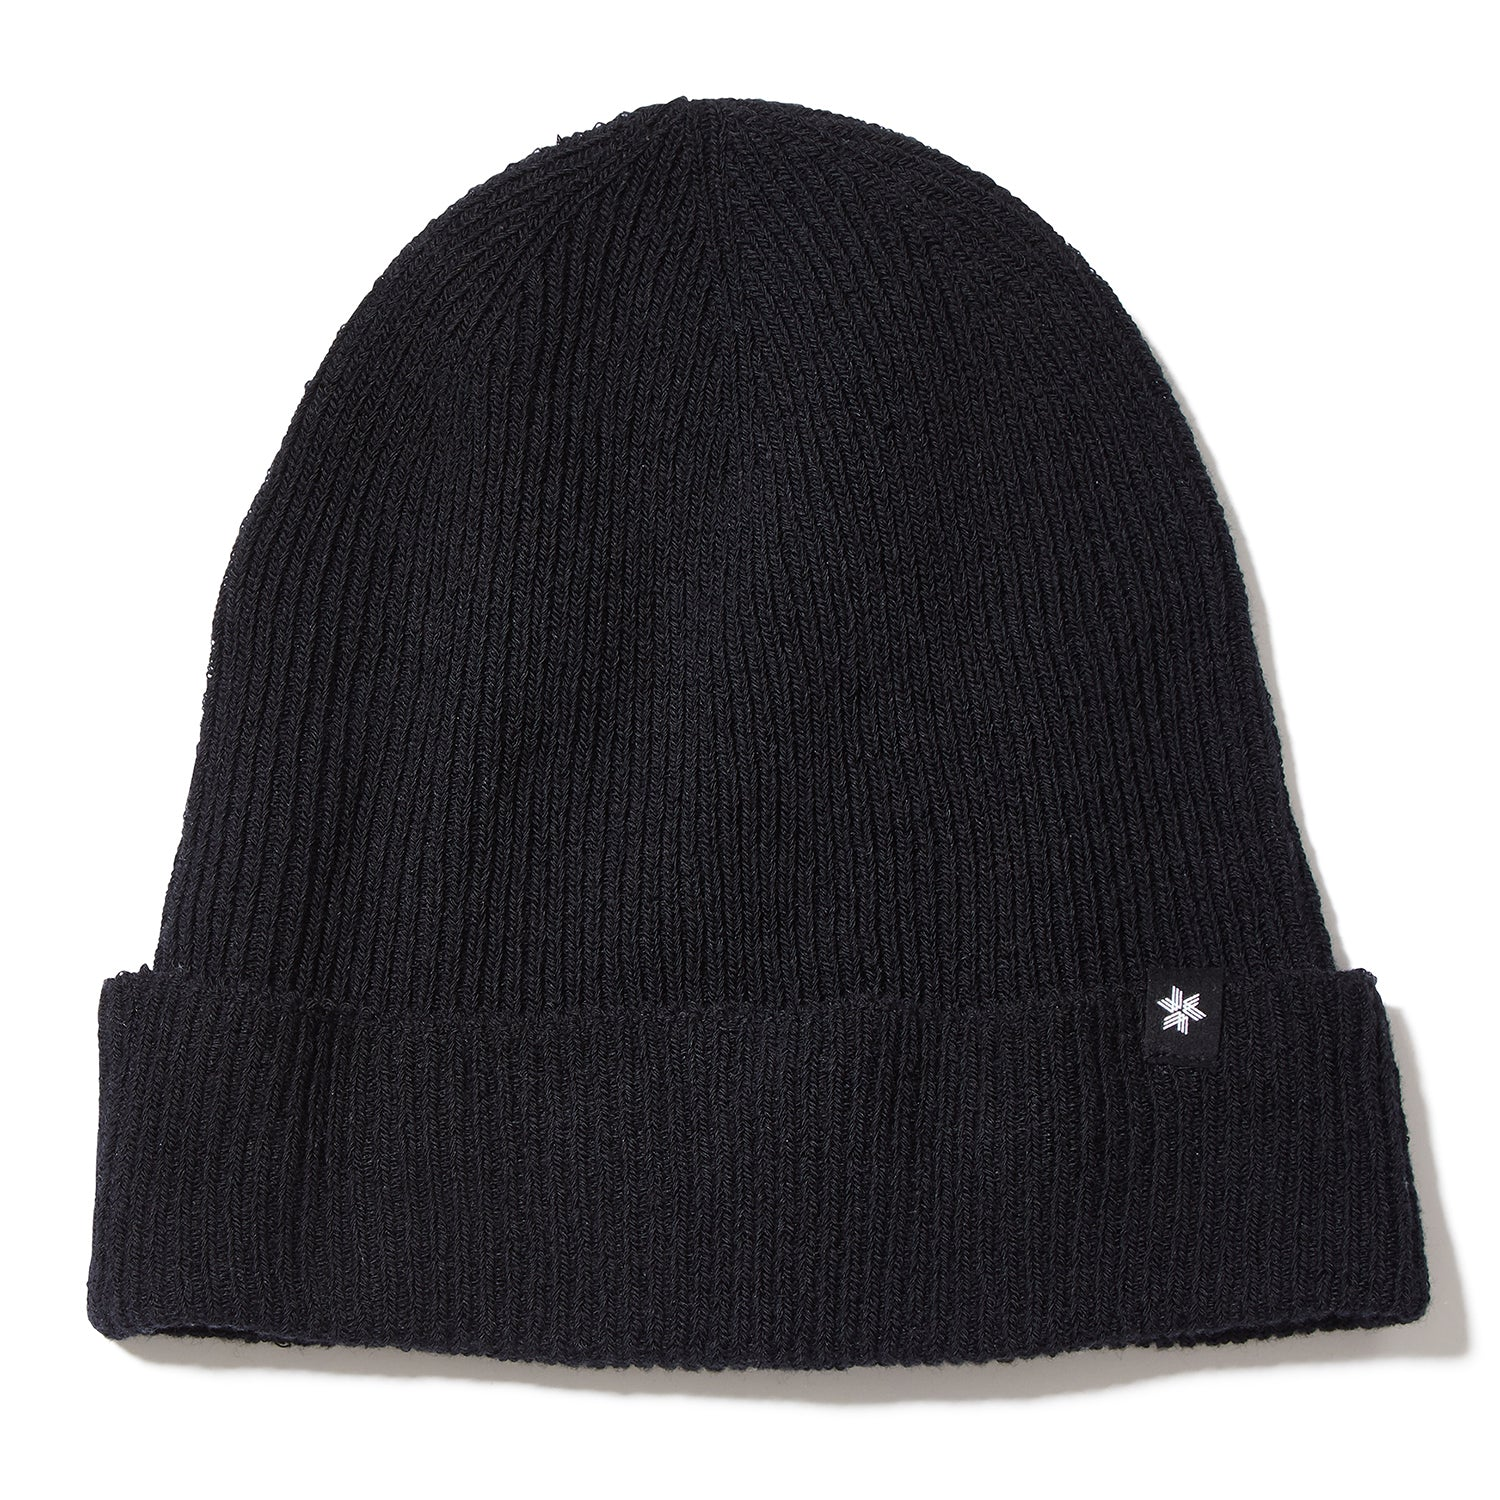 DRY KNIT CAP BLACK